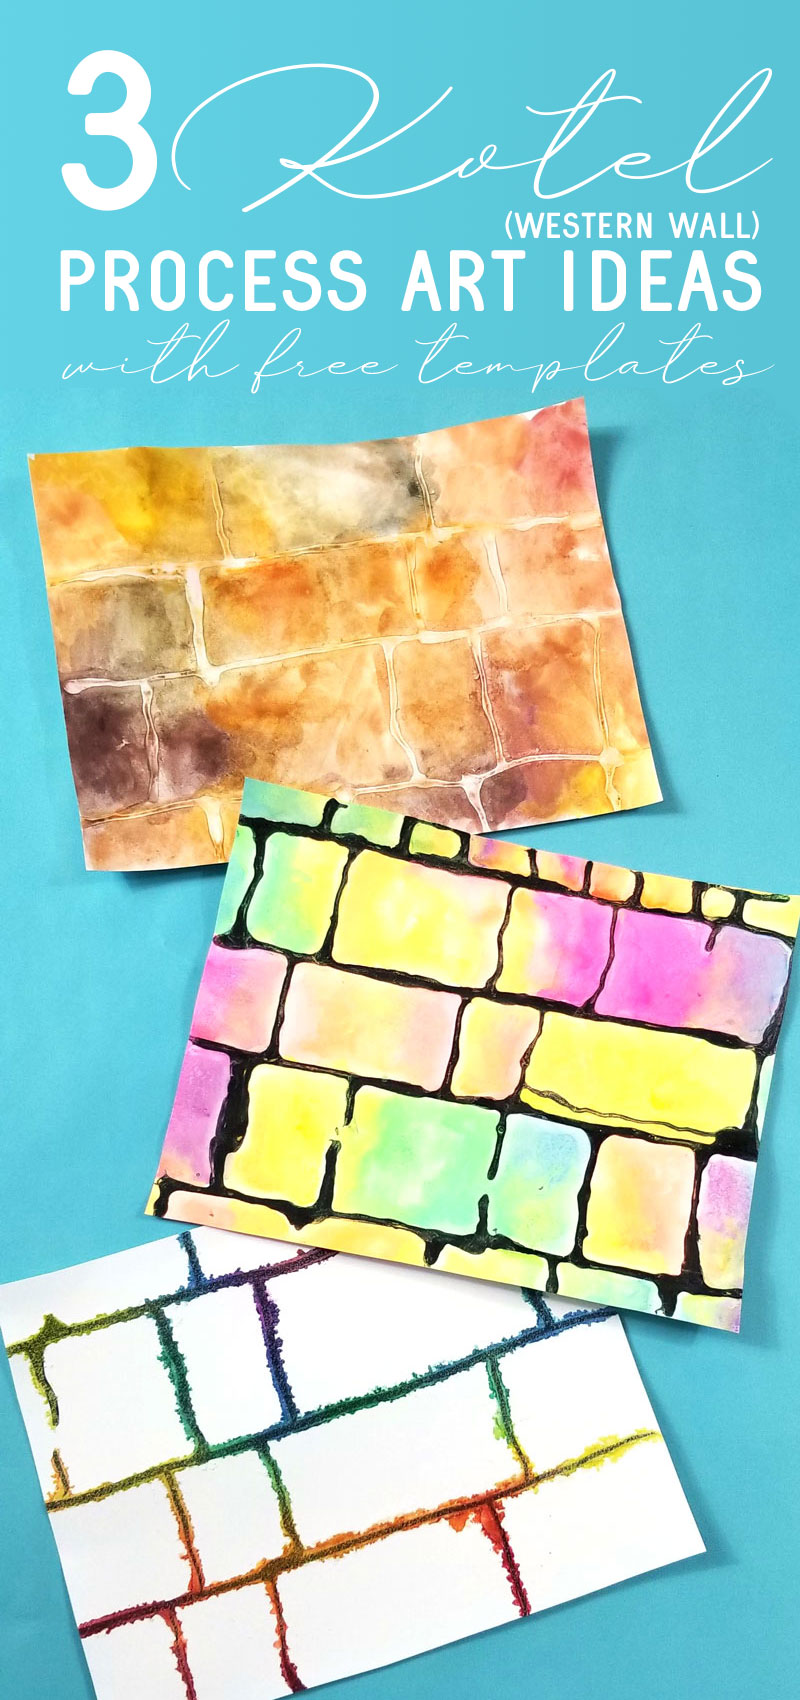 Click for a free template to make three kotel process art projects - fun Jewish art projects for kids and adults! These watercolor process arts are a great idea for Hebrew School, Tishah B'av crafts, Sukkah decorations, and for Israel themed celebrations.